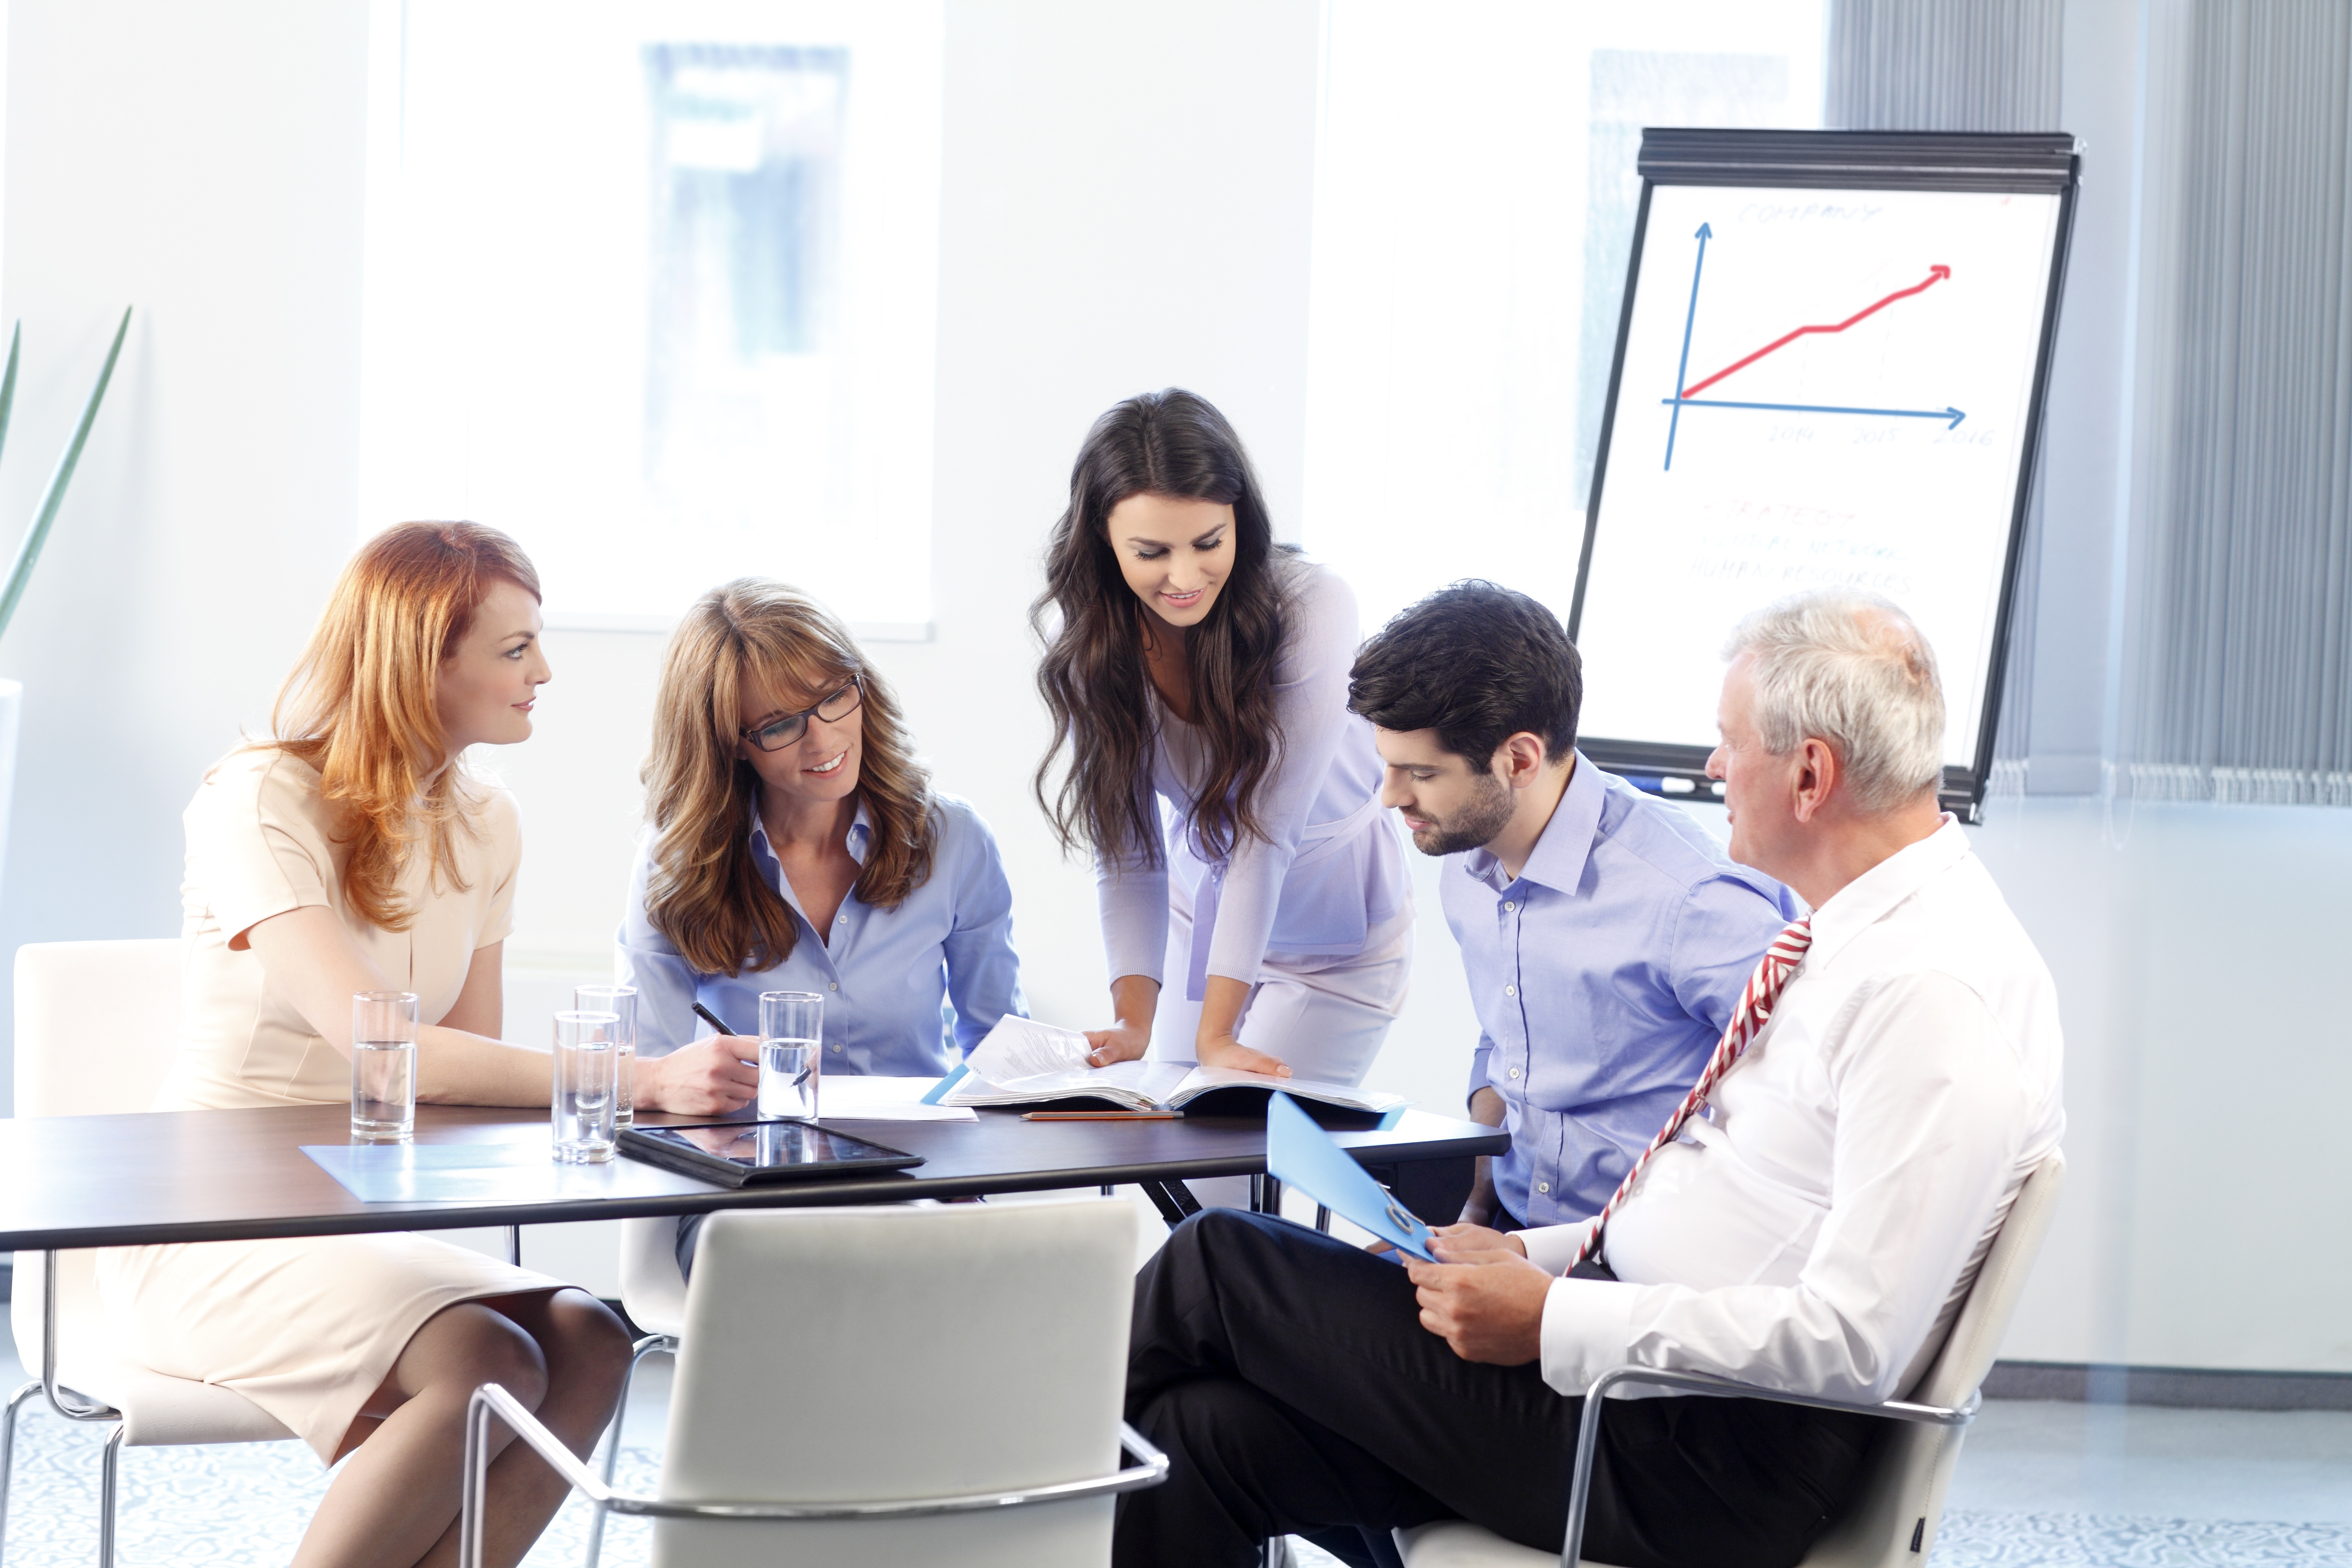 5 Quick Tips for Leading the Sale More Effectively